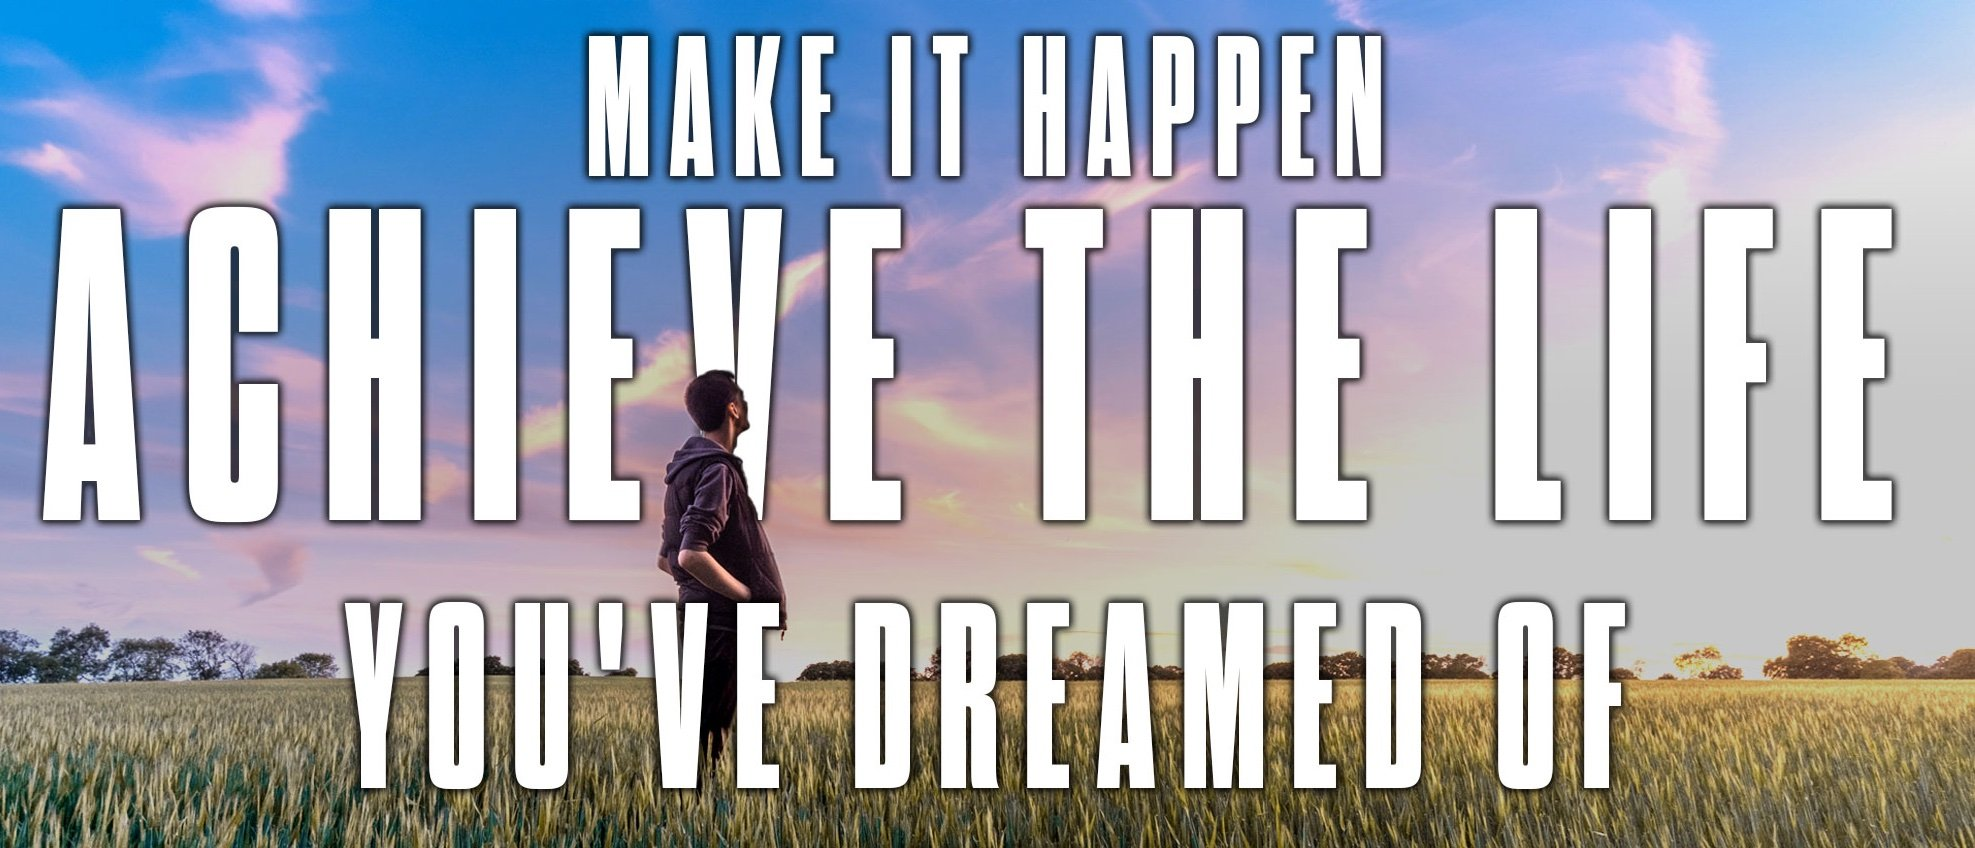 Make It happen, Achieve the life you dreamed of with step-by-step coaching to transcend your limits, find you purpose and fulfil your potential